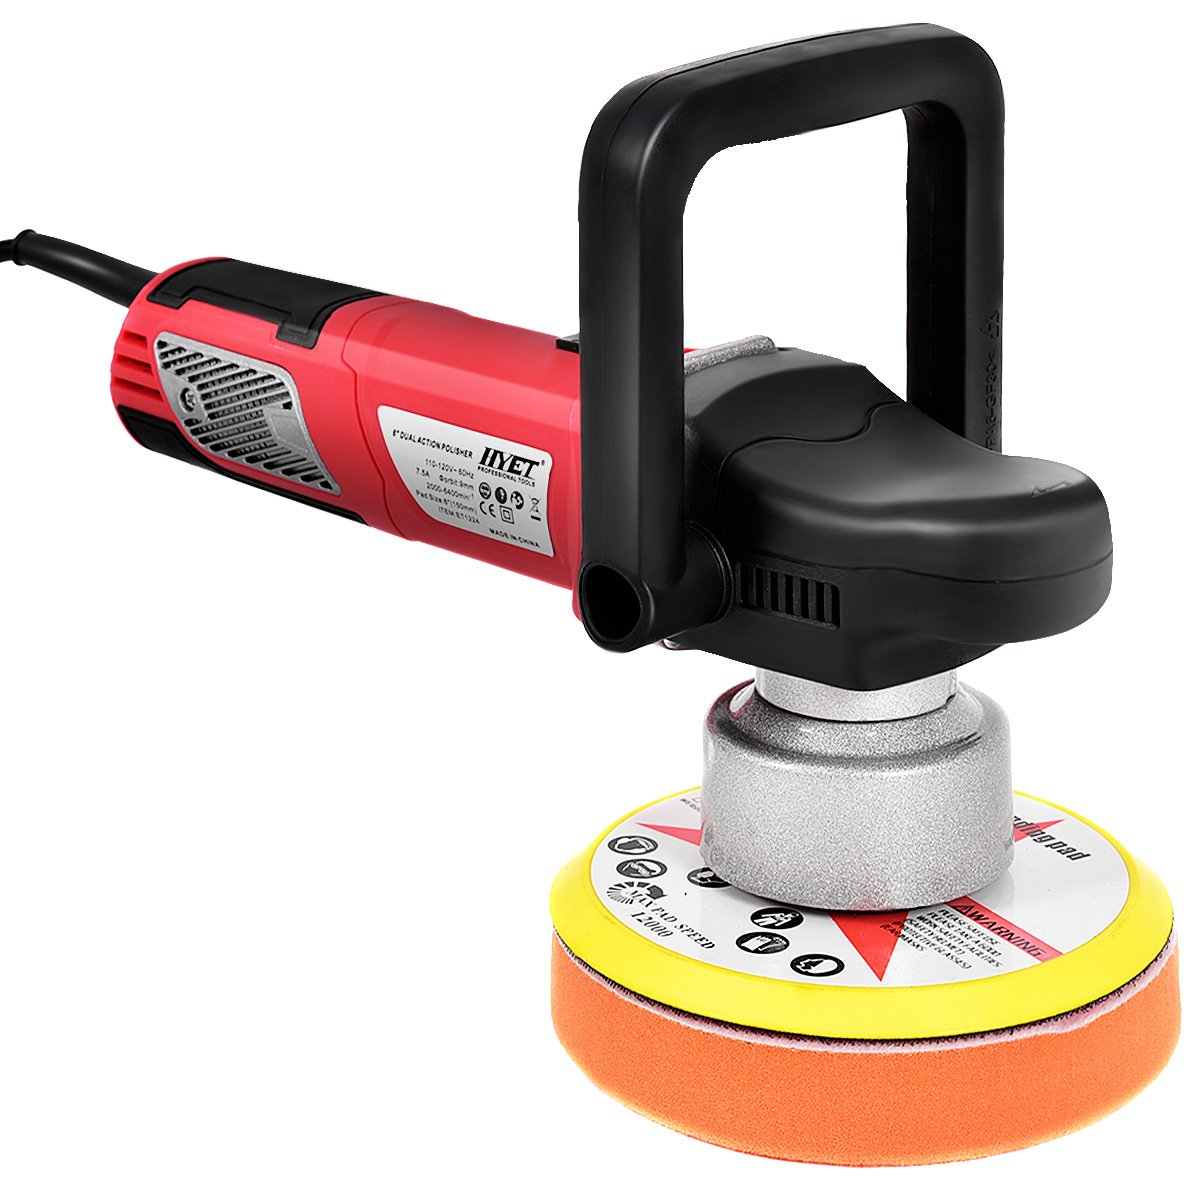 Goplus orbital sander featured image 7